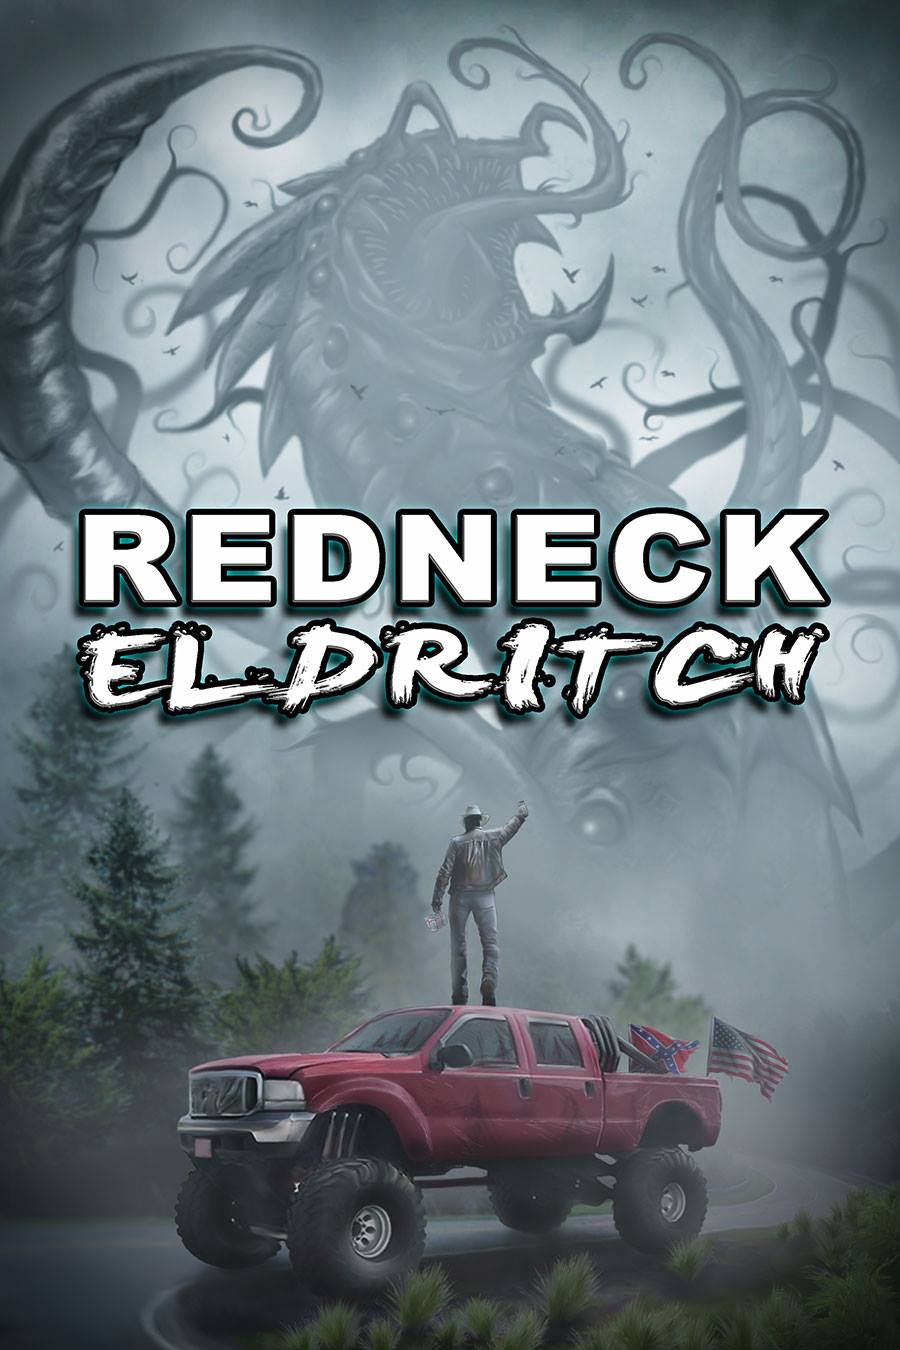 Redneck_Eldritch_cover